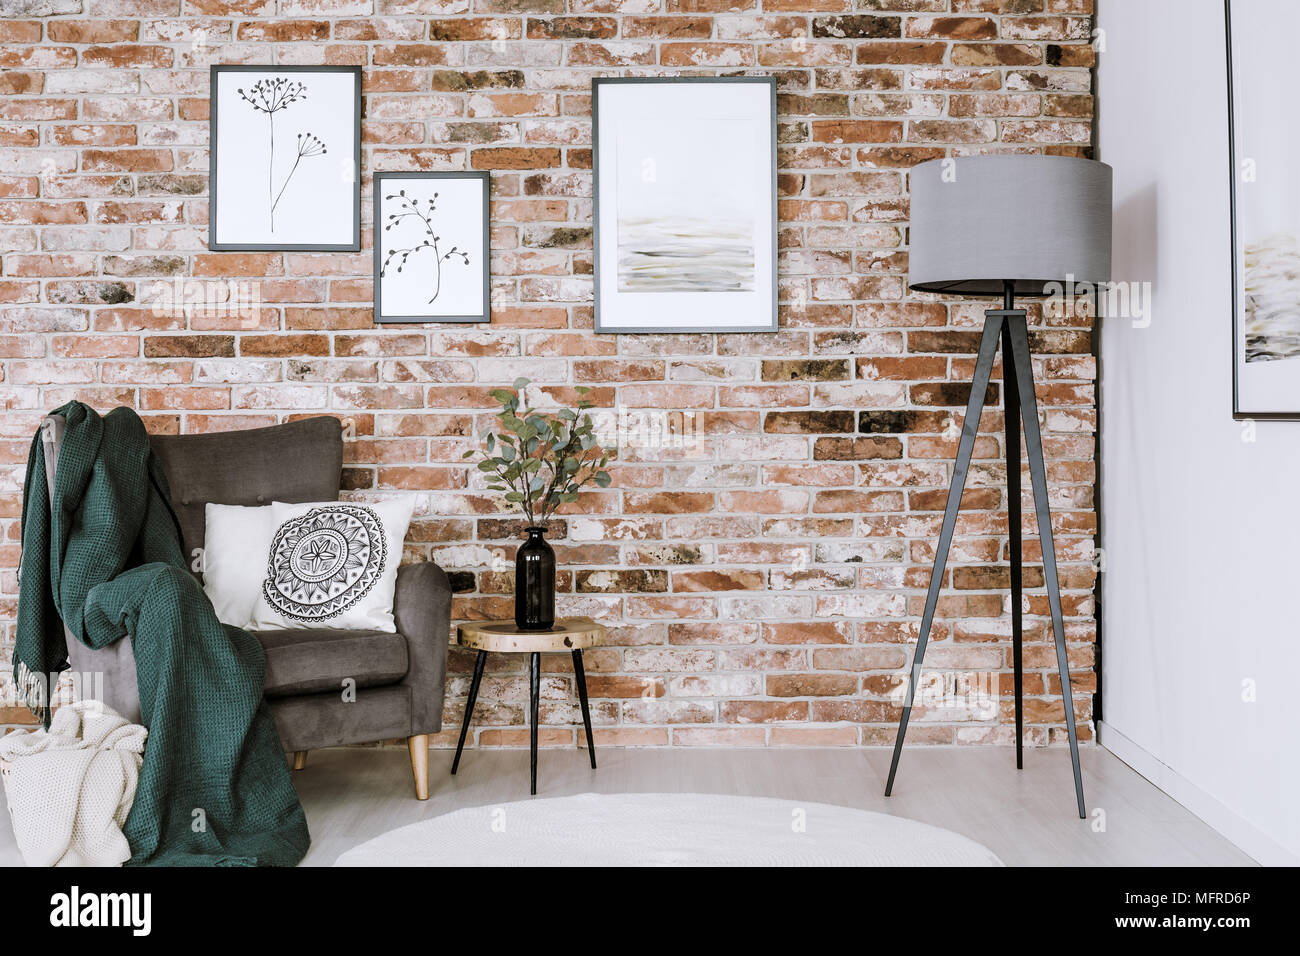 Grey Lamp And Armchair With White Pillow Set On A Brick Wall Posters In Living Room Interior